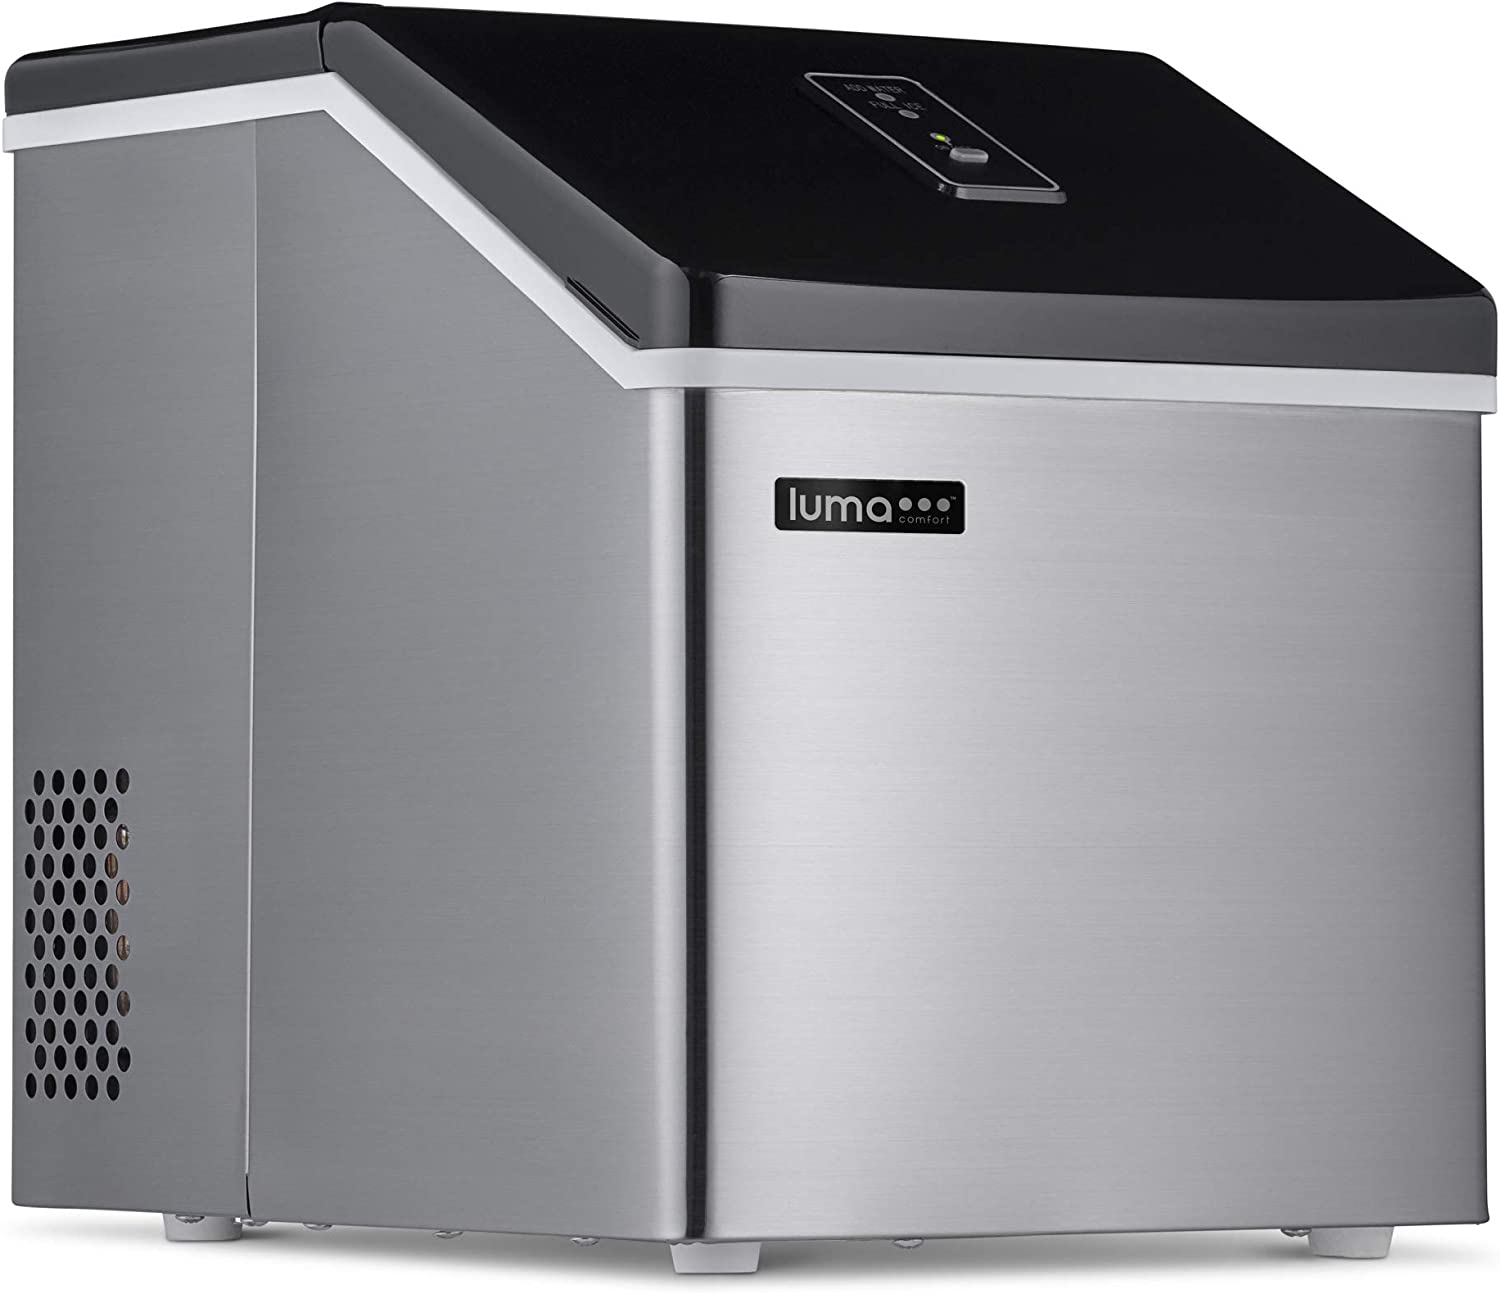 71SgmmNaCFL. AC SL1500 The Best Energy Efficient Small Chest Freezers 2021